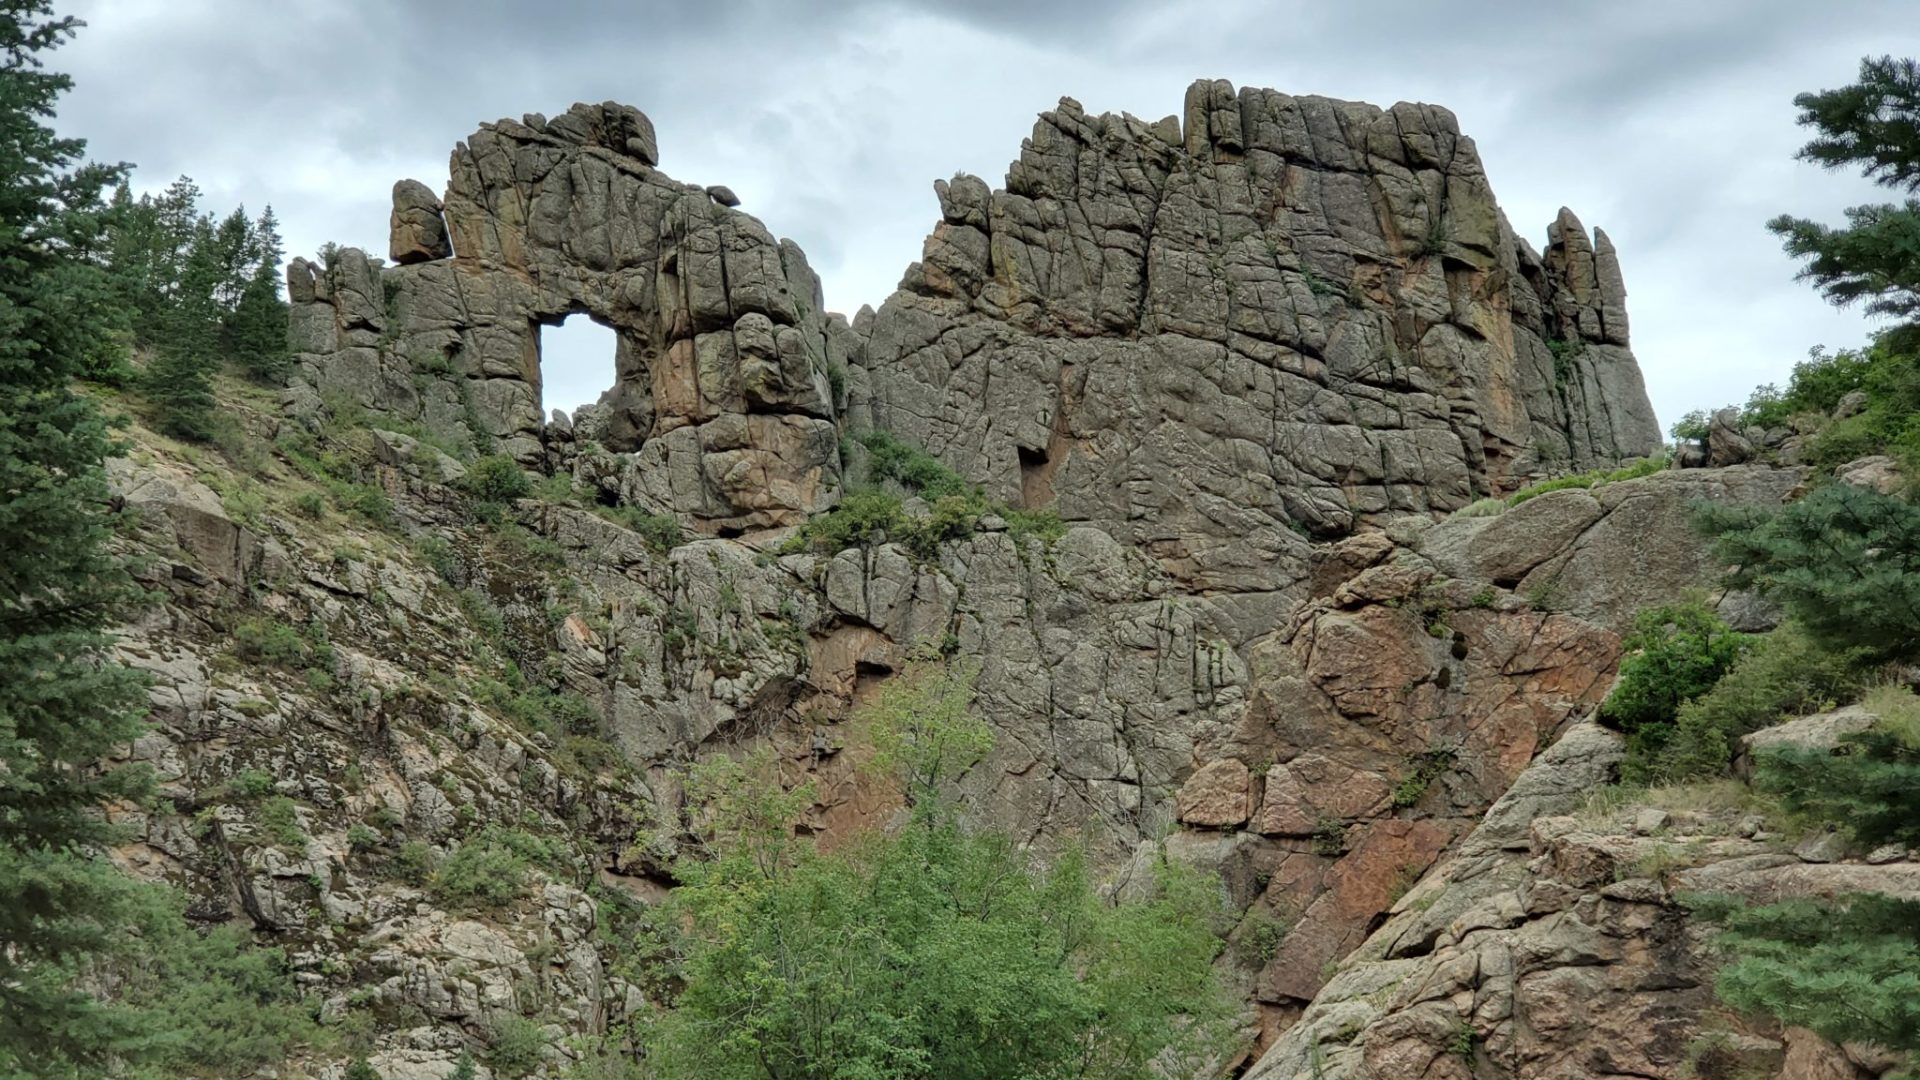 The Window rock formation near the road